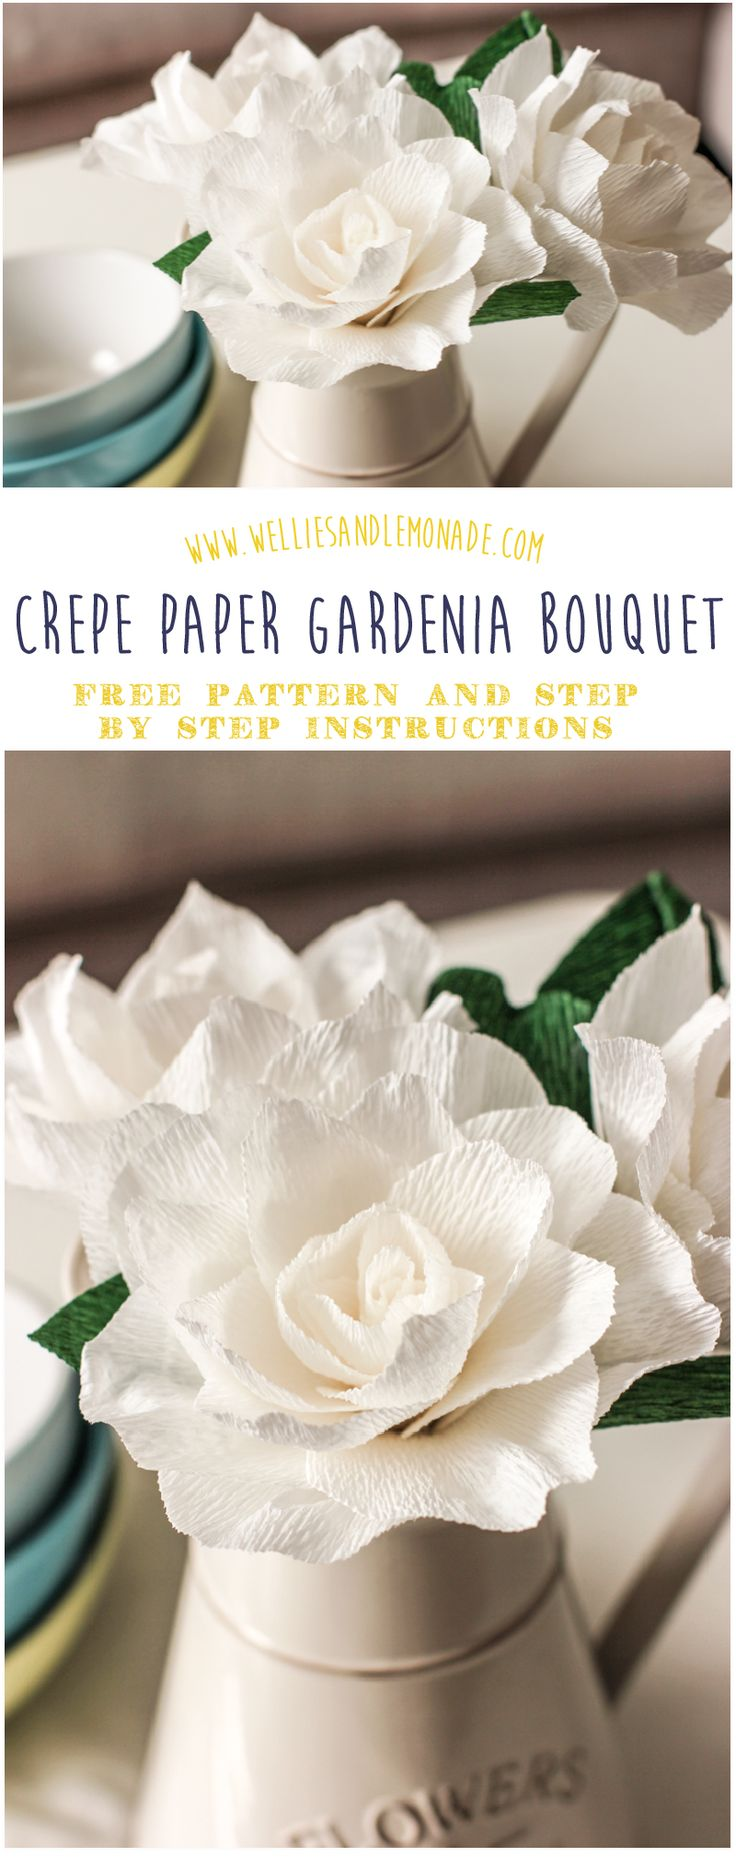 Learn how to make this beautiful crepe paper gardenia flower bouquet with my simple to follow step by step instructions. Click through to get your free pattern or pin now for later. Find more free flower patterns at http://www.welliesandlemonade.com